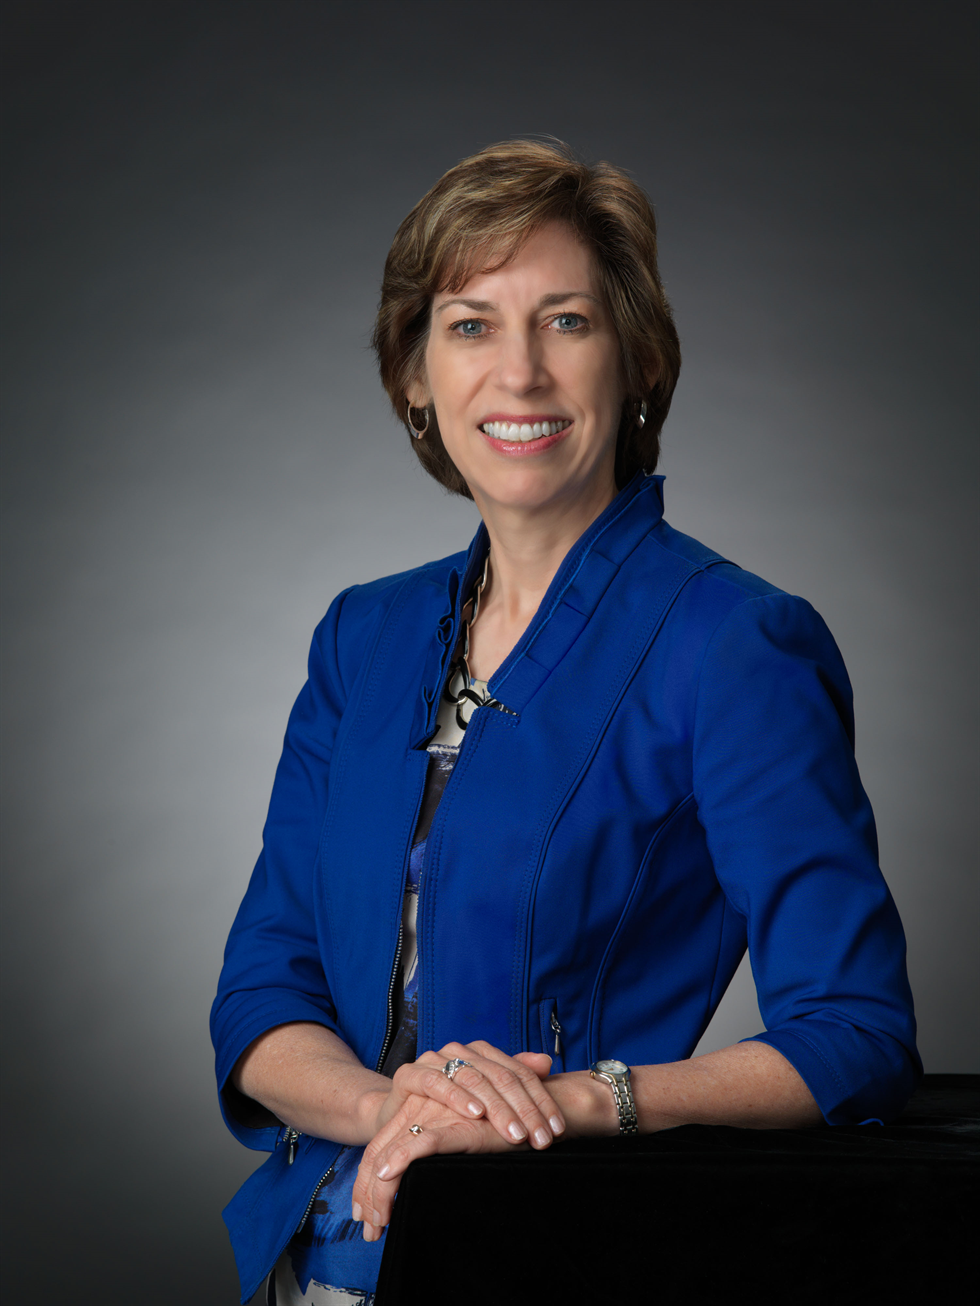 Director of NASA's Johnson Space Center, Dr. Ellen Ochoa. Image Credit: NASA